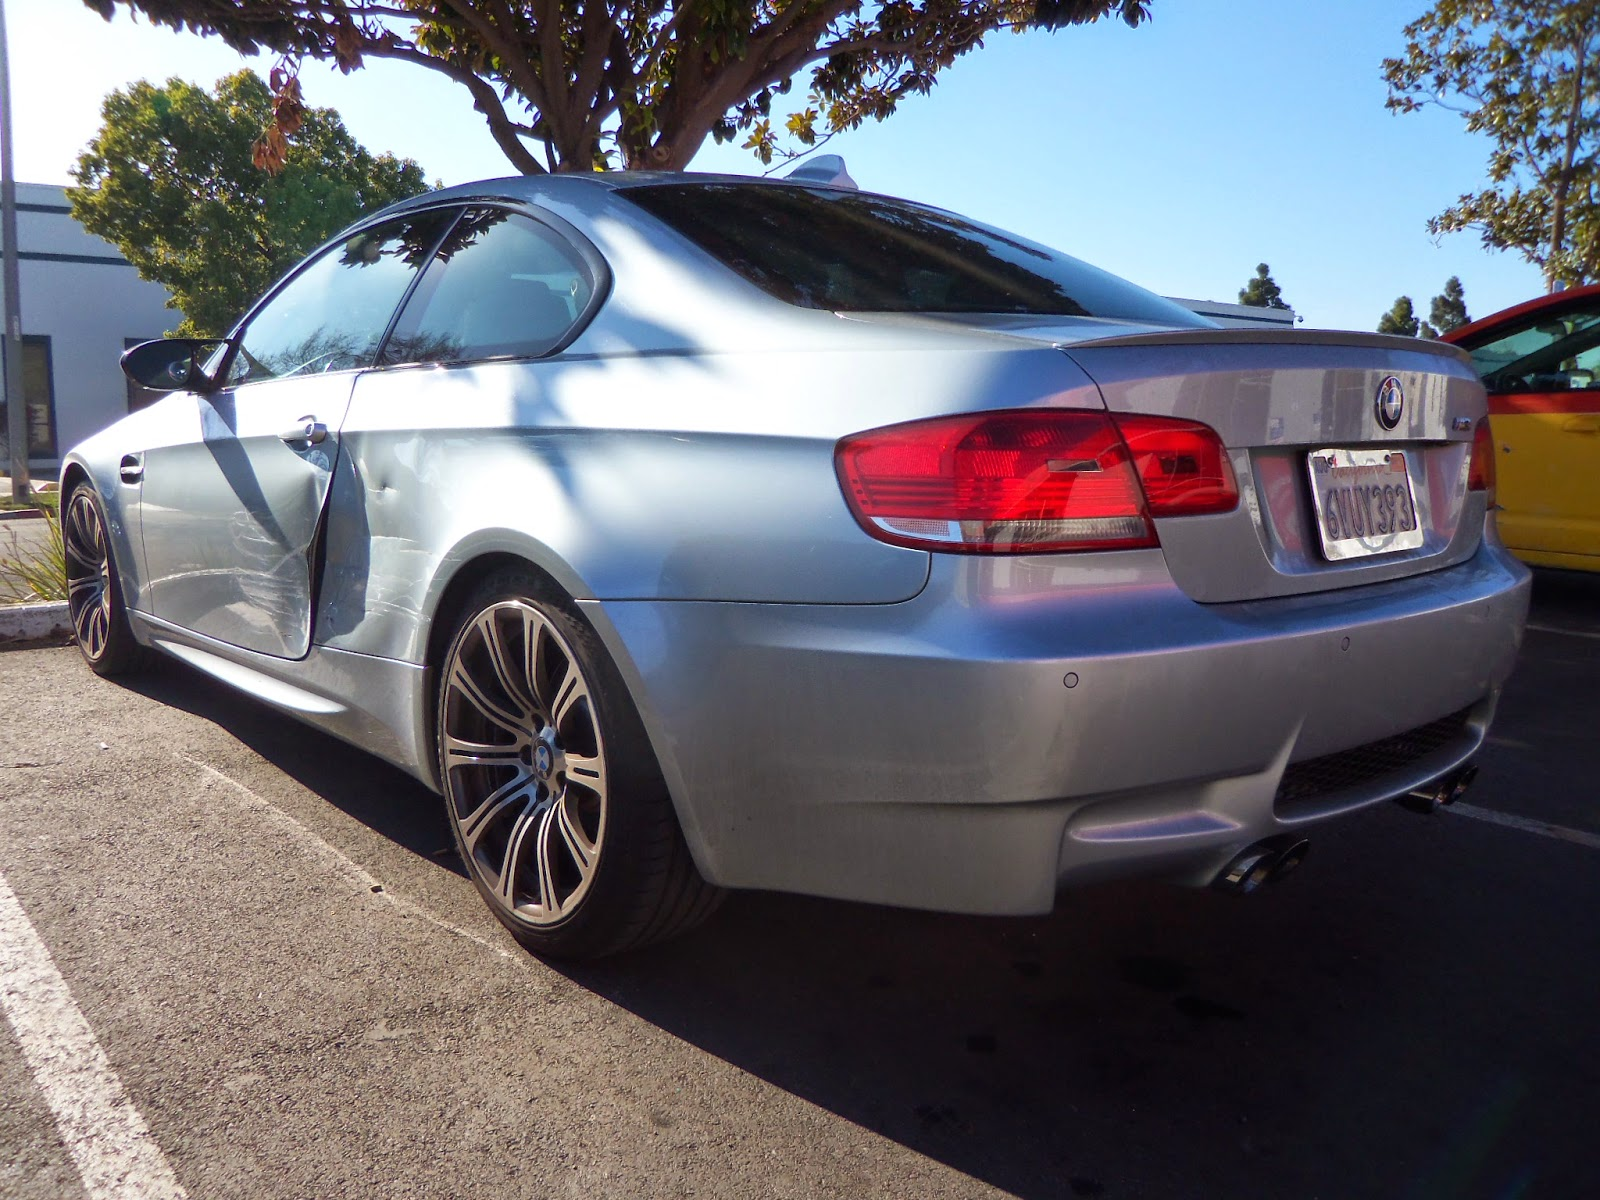 BMW M3 before Collision Repair at Almost Everything Auto Body